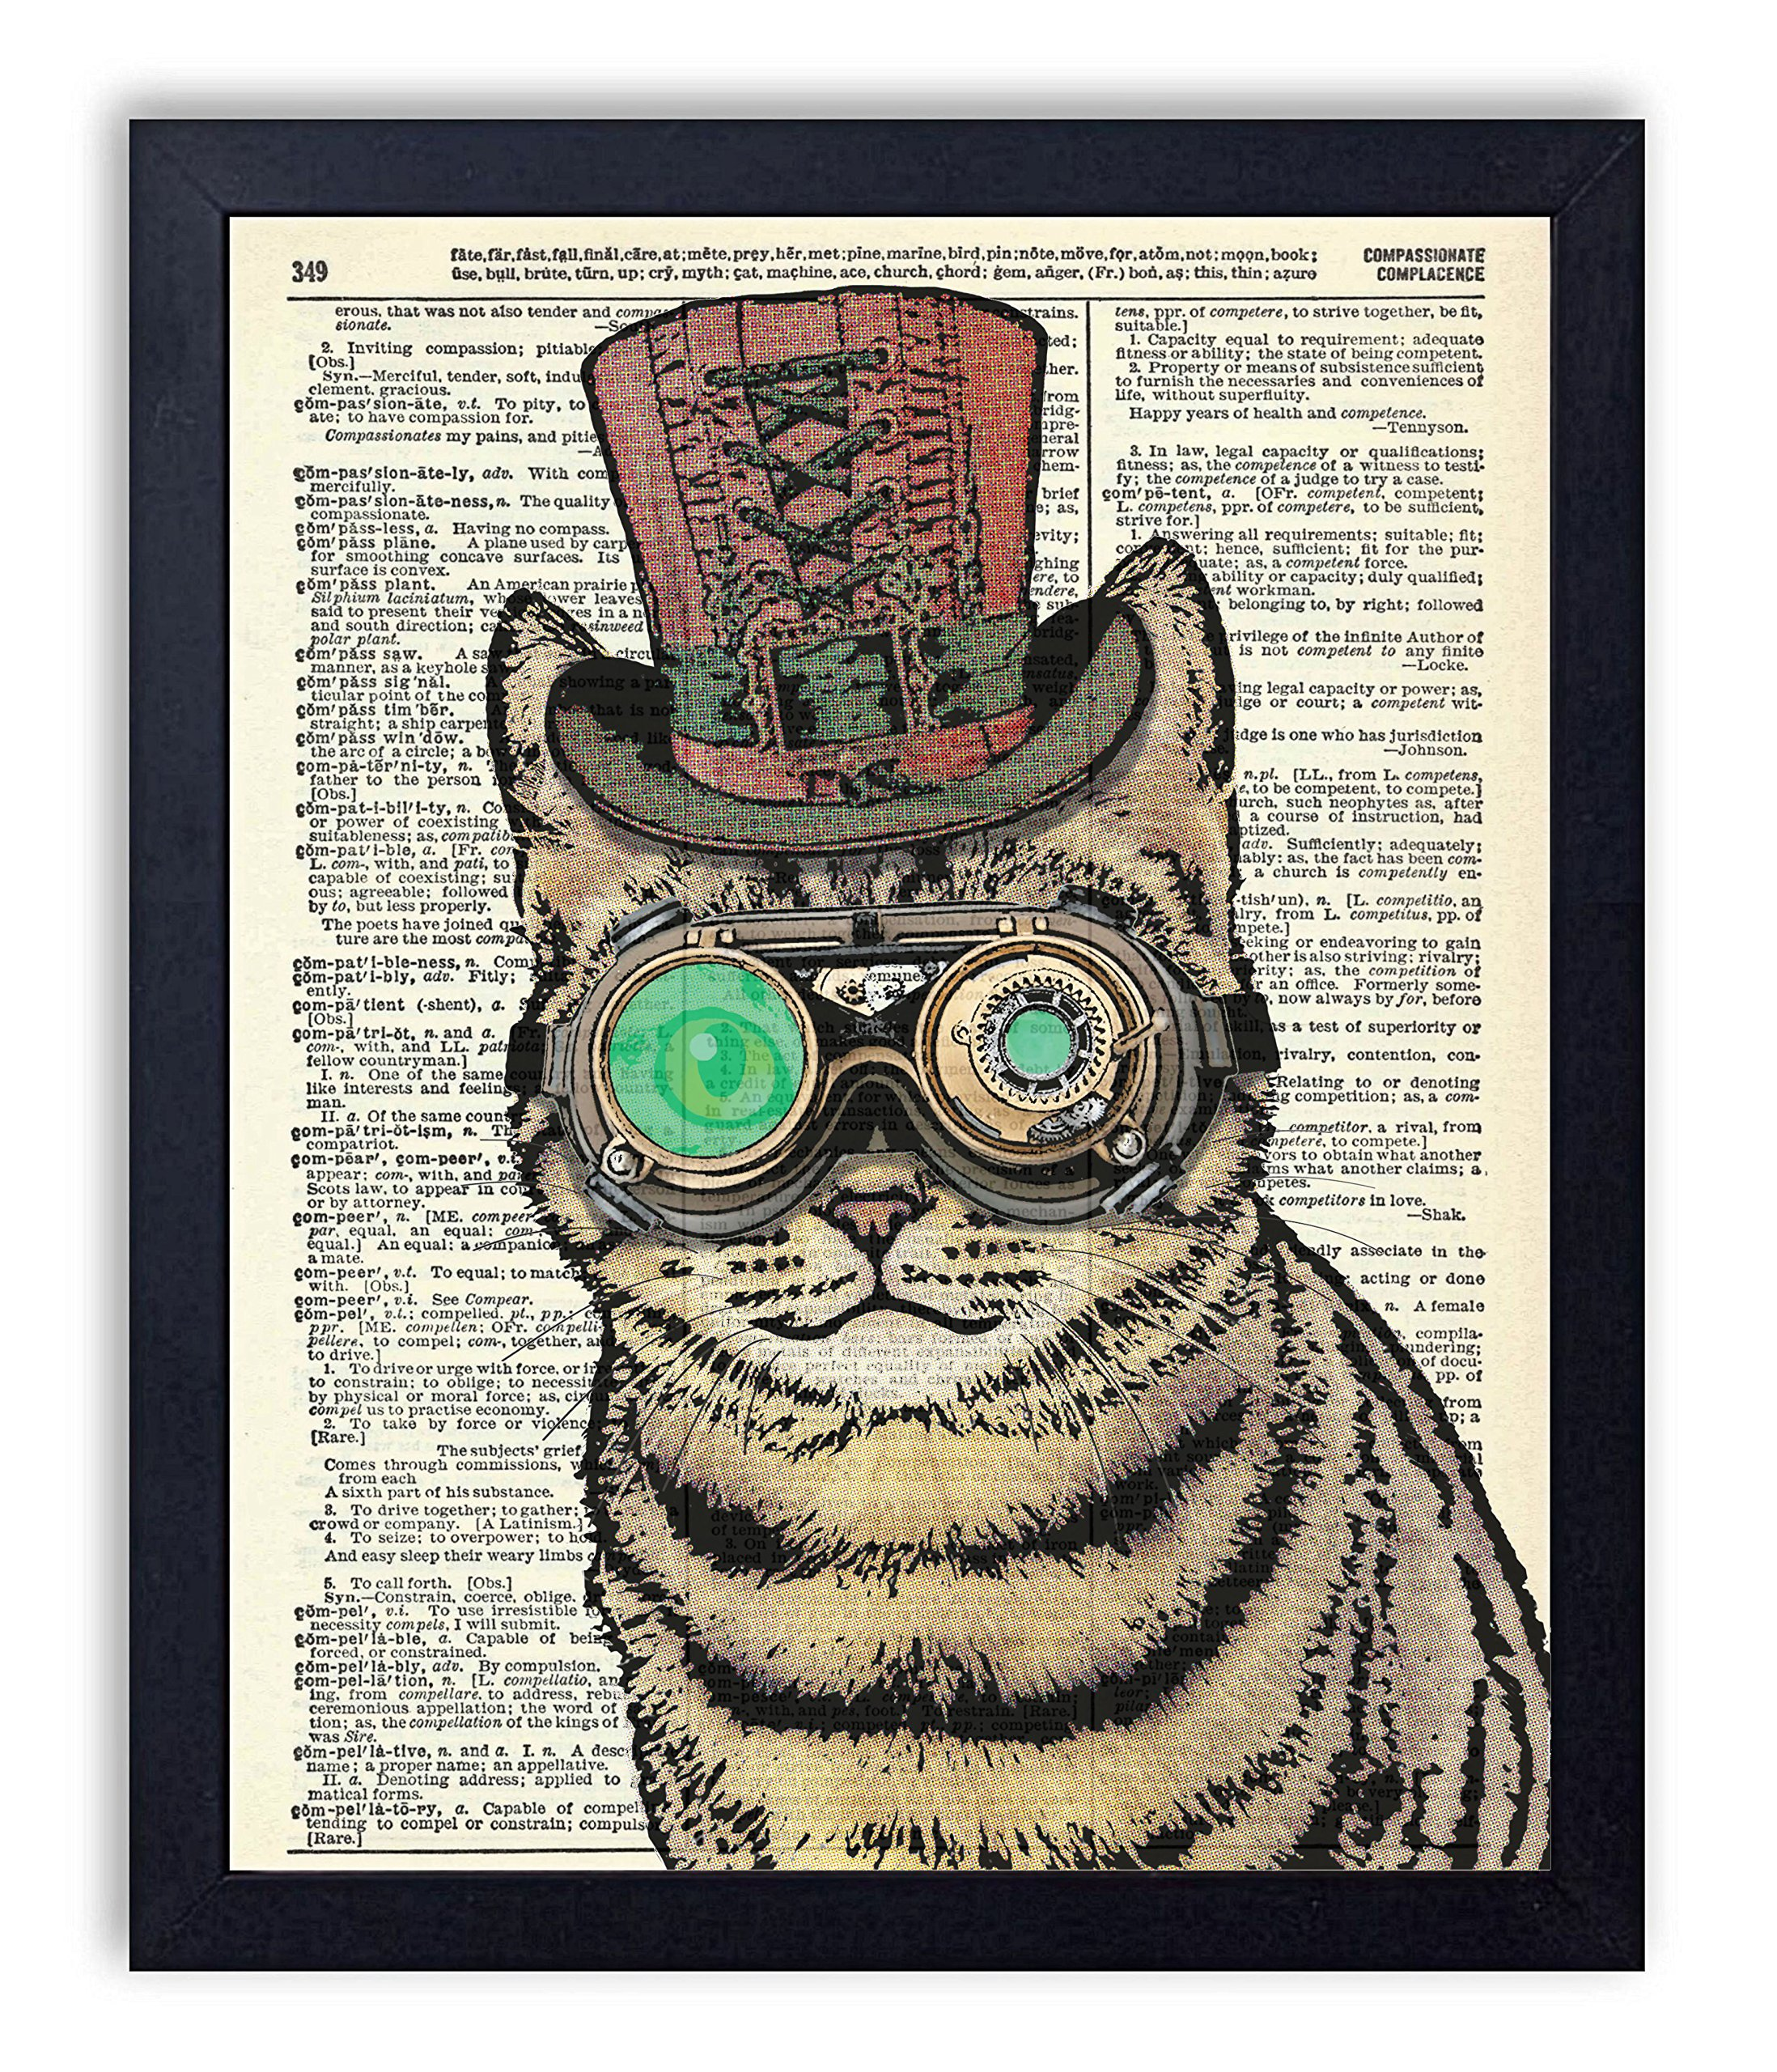 Edison The Steampunk Cat Vintage Wall Art Upcycled Dictionary Art Print Poster 8x10 inches, Unframed 3